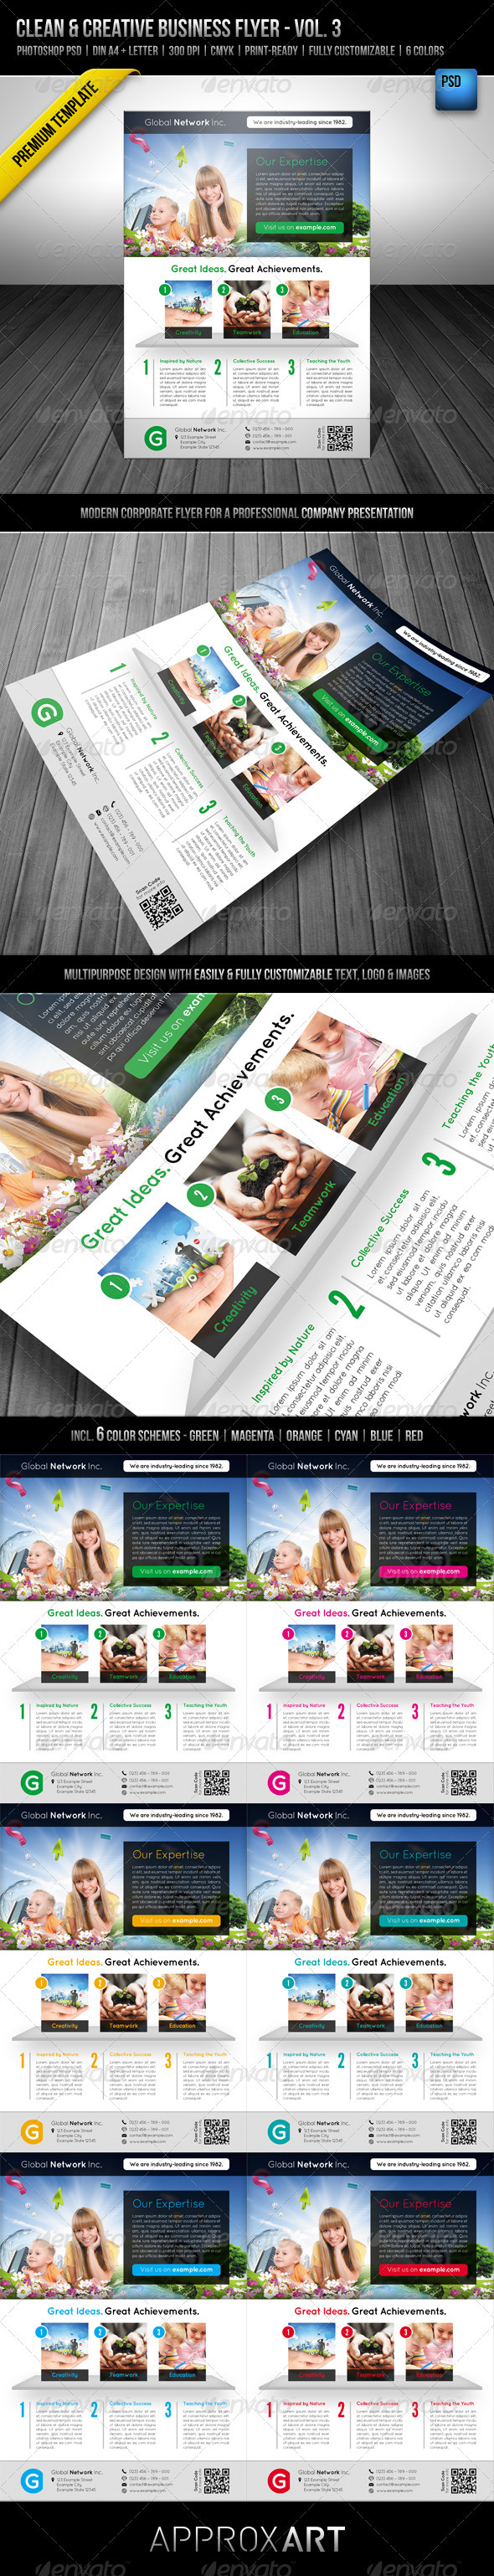 GraphicRiver Clean & Creative Business Flyer Vol 3 2800797